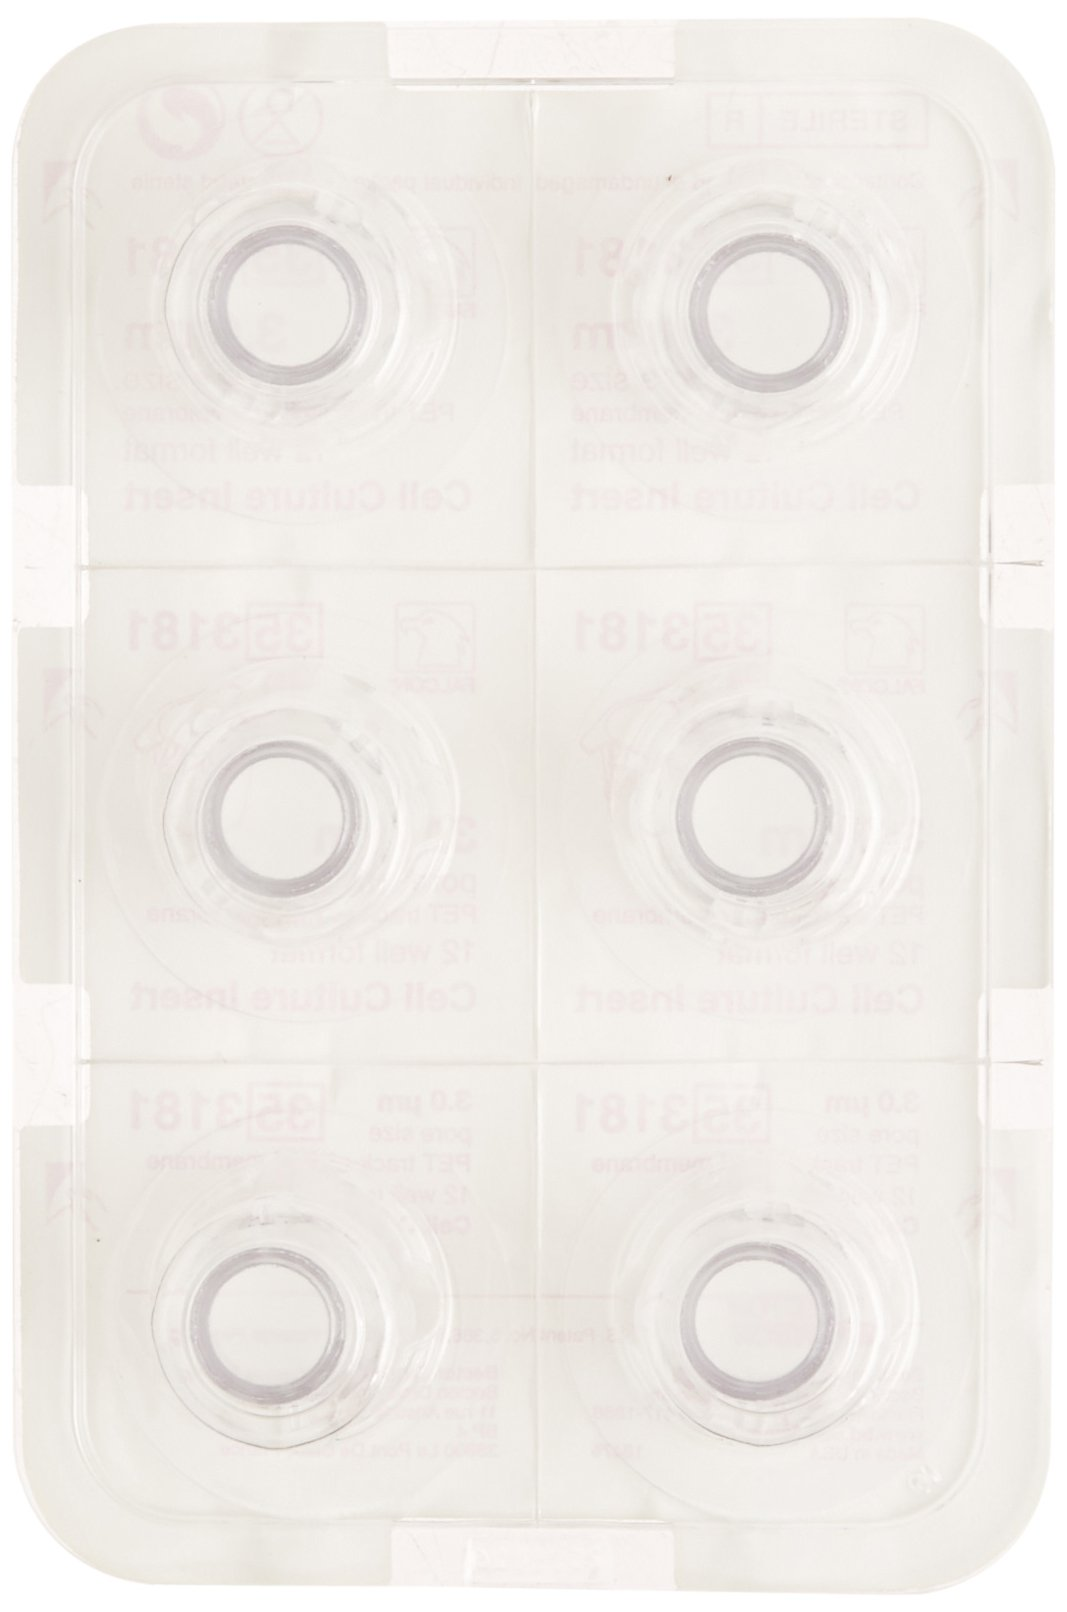 BD 353180 Falcon Transparent Polyethylene Terephthalate Sterile Cell Culture Insert, 0.4 Micron Pore Size, For 12 Well Plate (Case of 48)